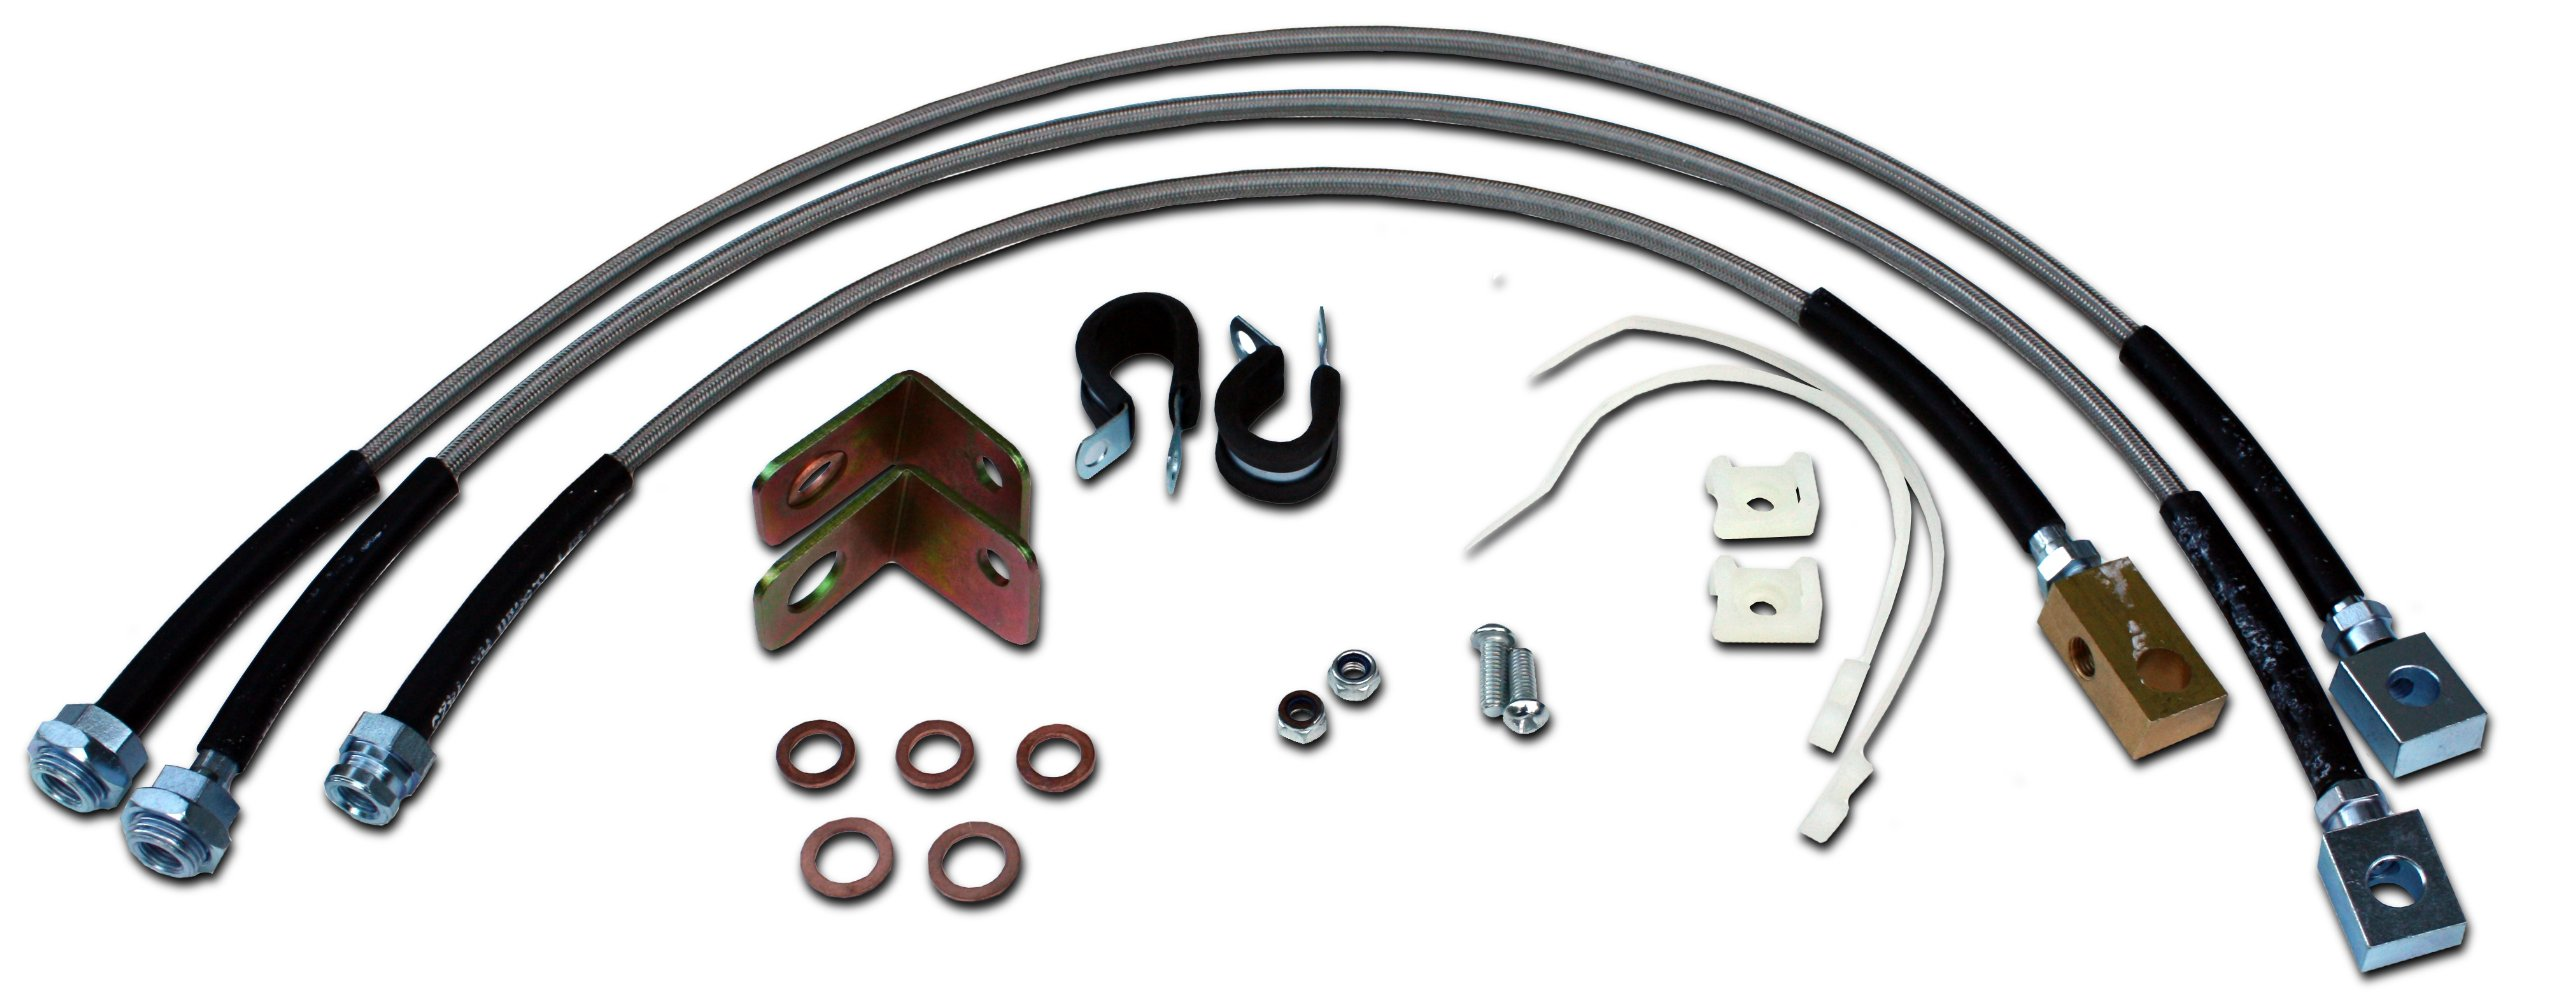 Stainless Steel Extended Brake Line Kit Fits Jeep Wrangler YJ by Rukse